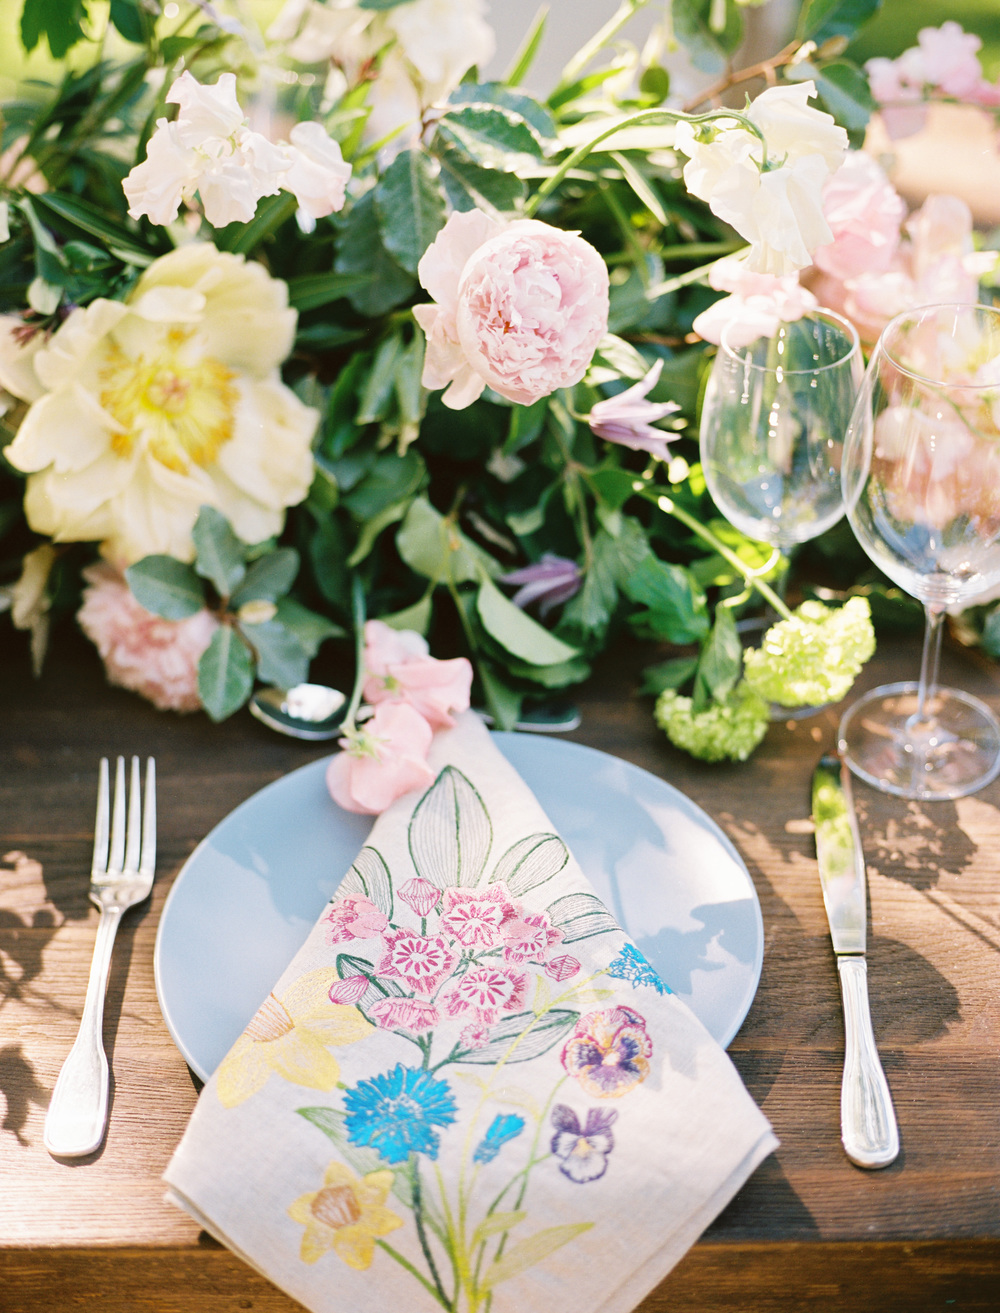 elegant texas garden wedding farm table inspiration from The Wildflowers | follow us on instagram: @ thewildflowers.events